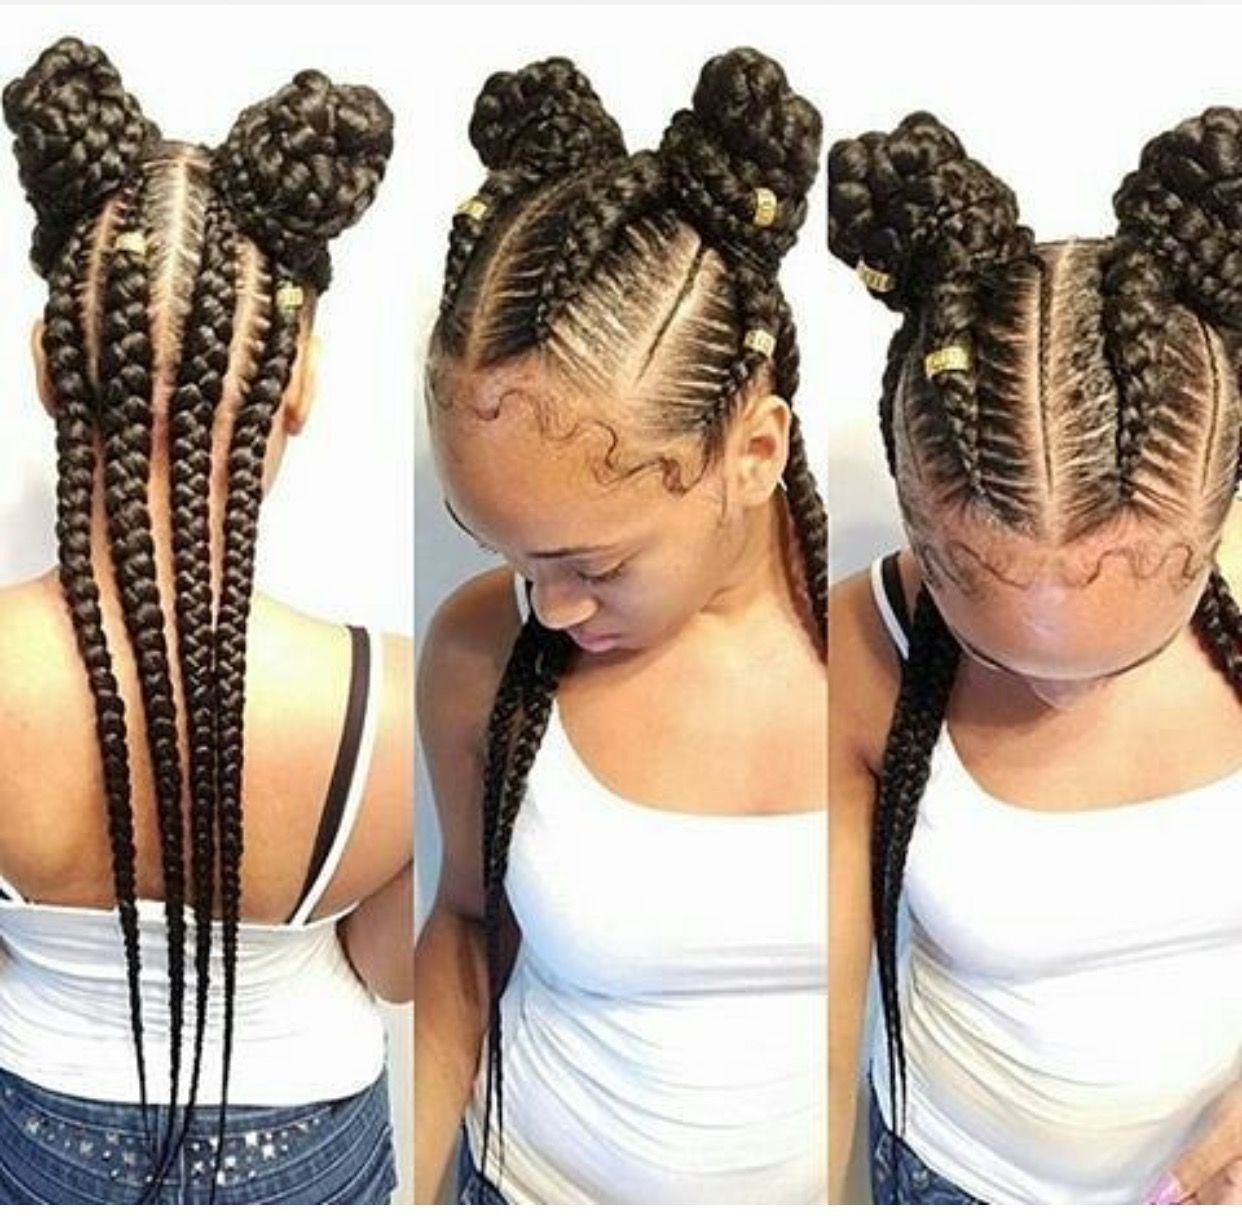 Pin by MyMiracleMoments Photography on Plats & Braids ...